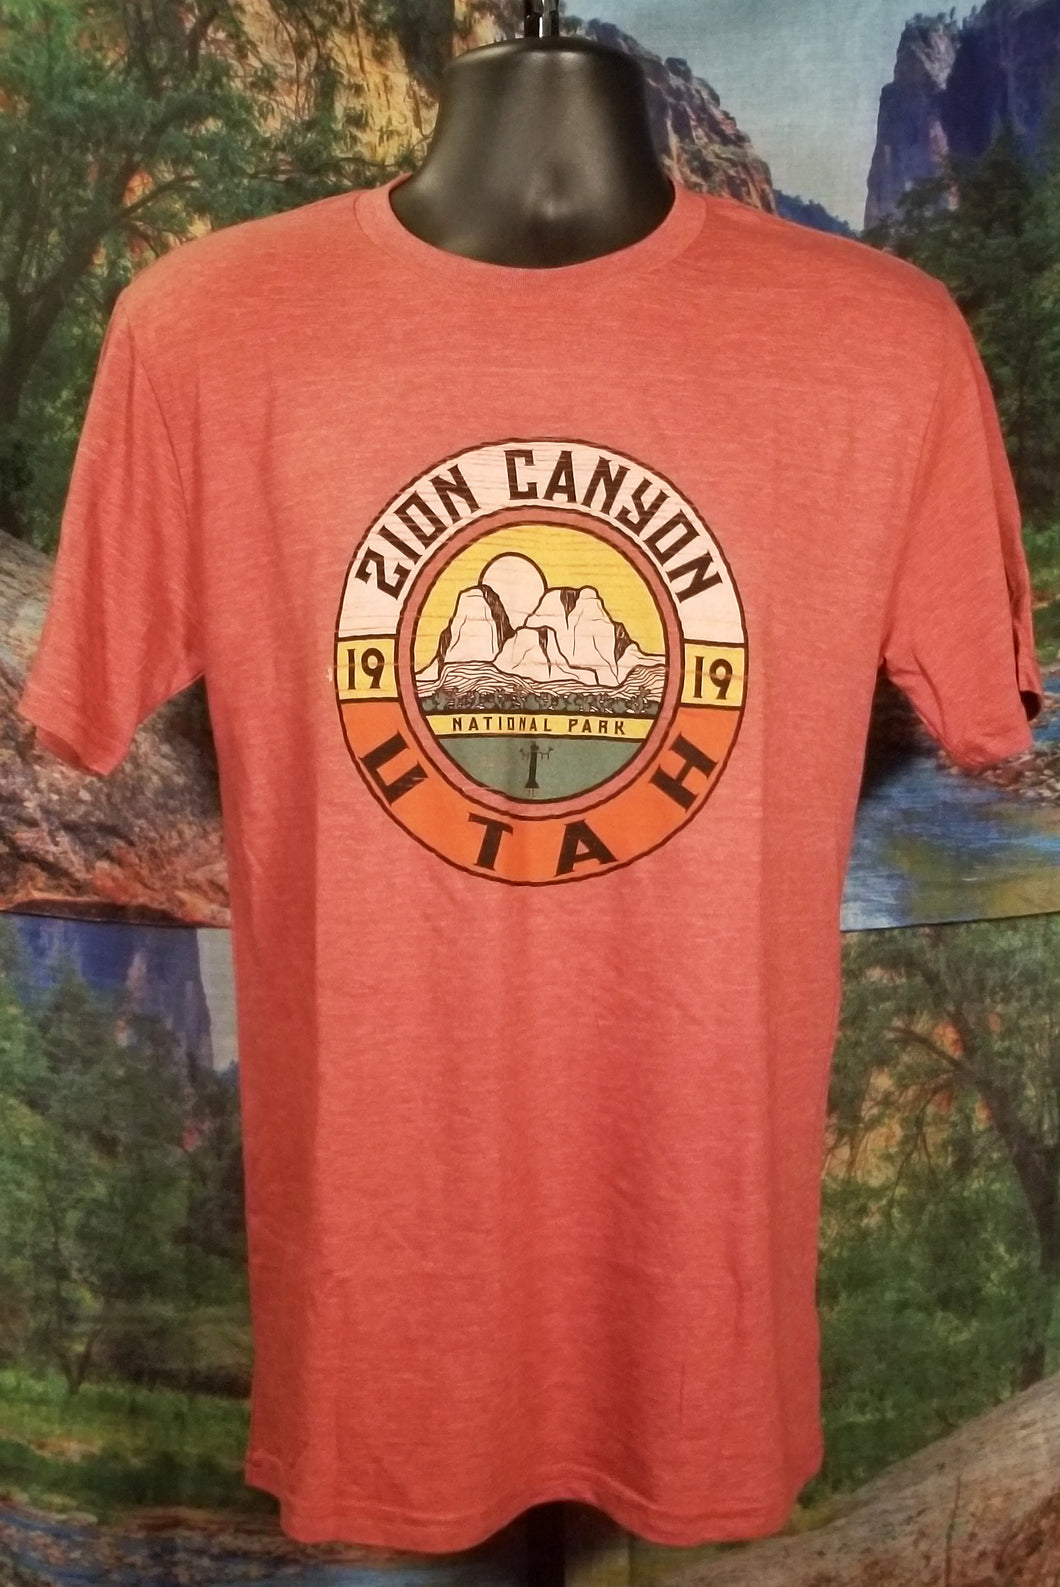 Zion Canyon Commemorative T-Shirt